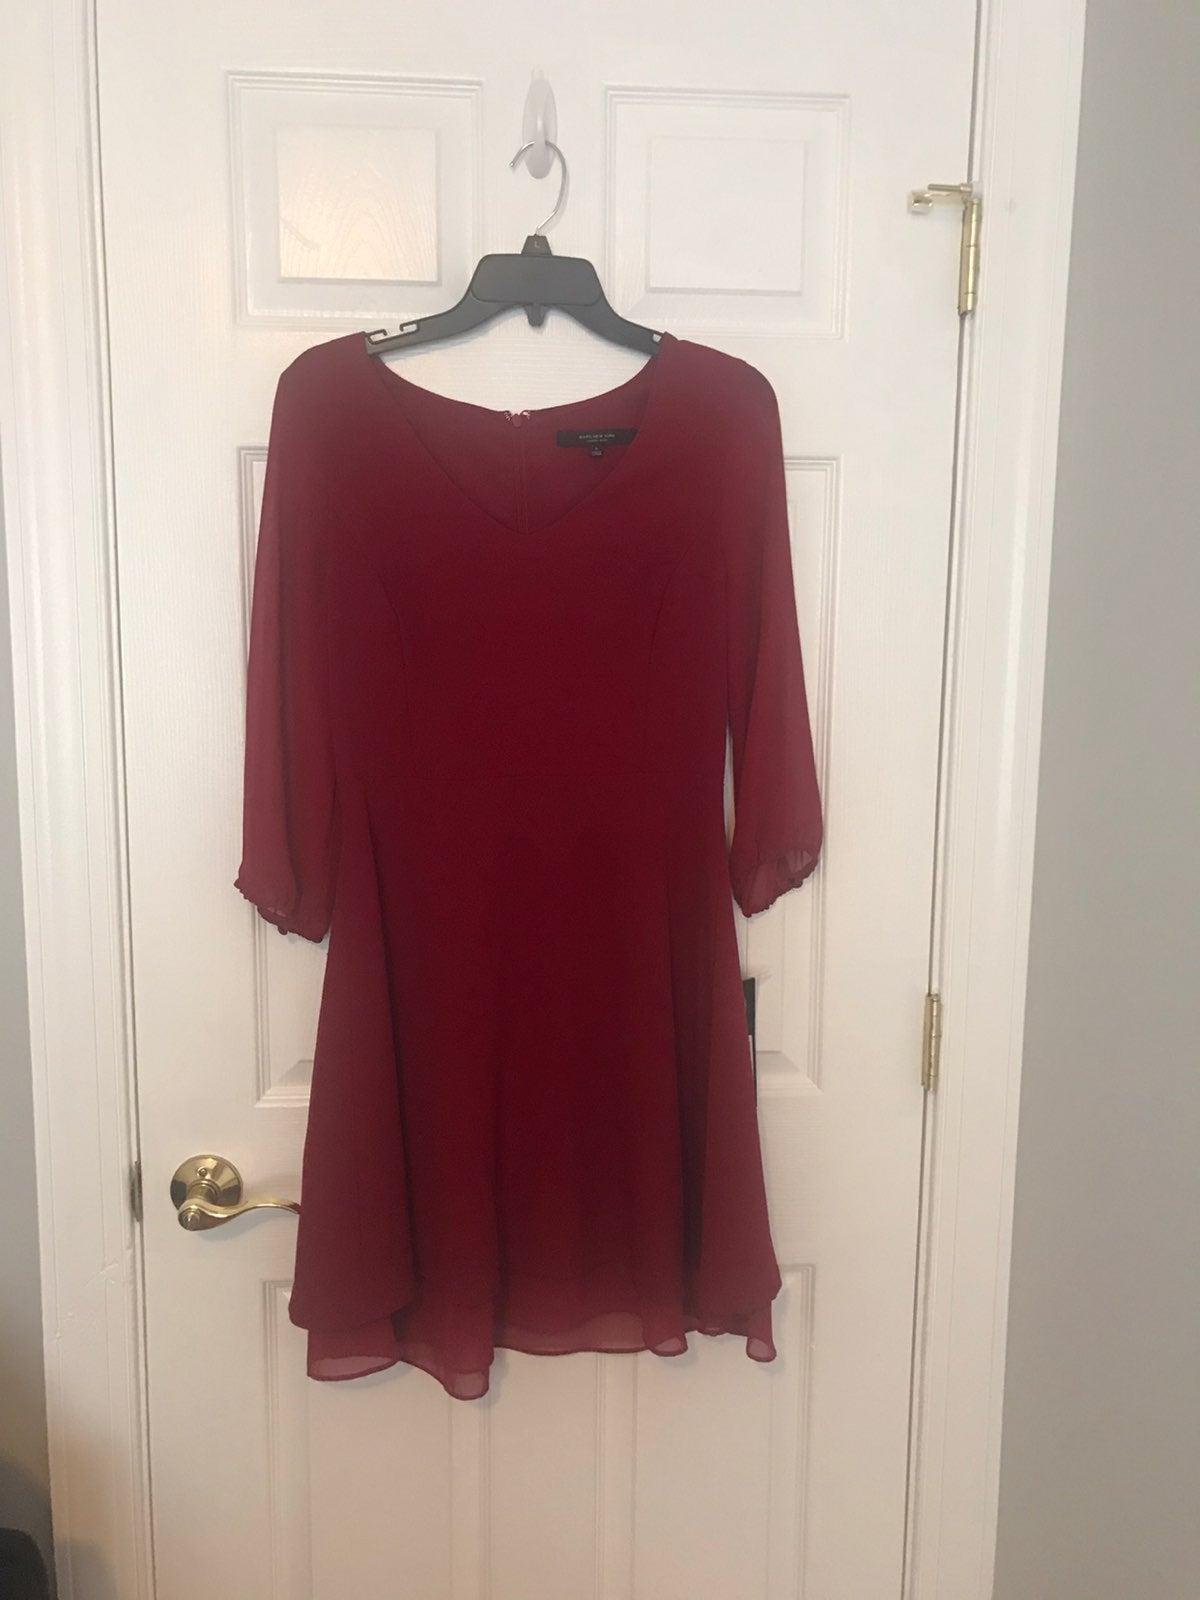 Marc New York Red Dress Size 6